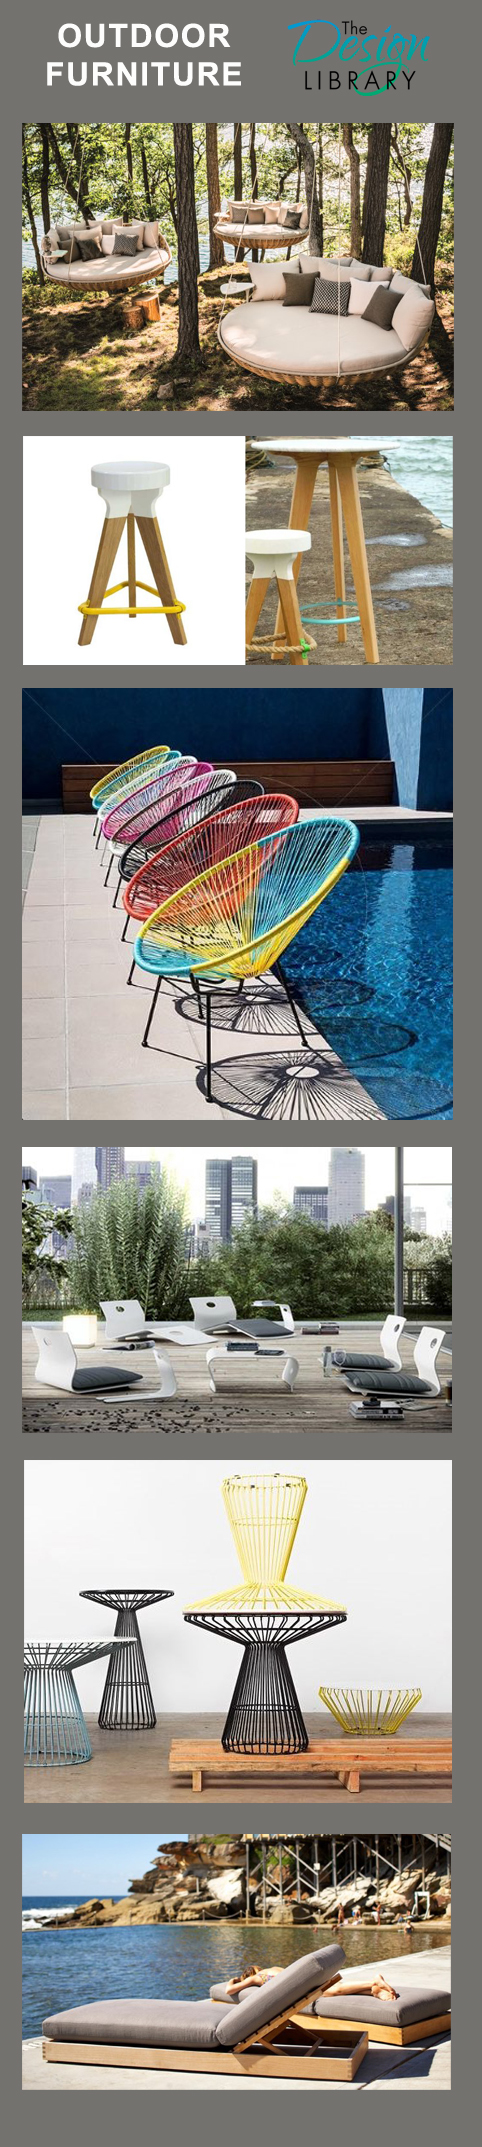 20 Great Pieces of Outdoor Furniture - DesignLibrary.com.au Where Interior Design & Architecture Meet Style